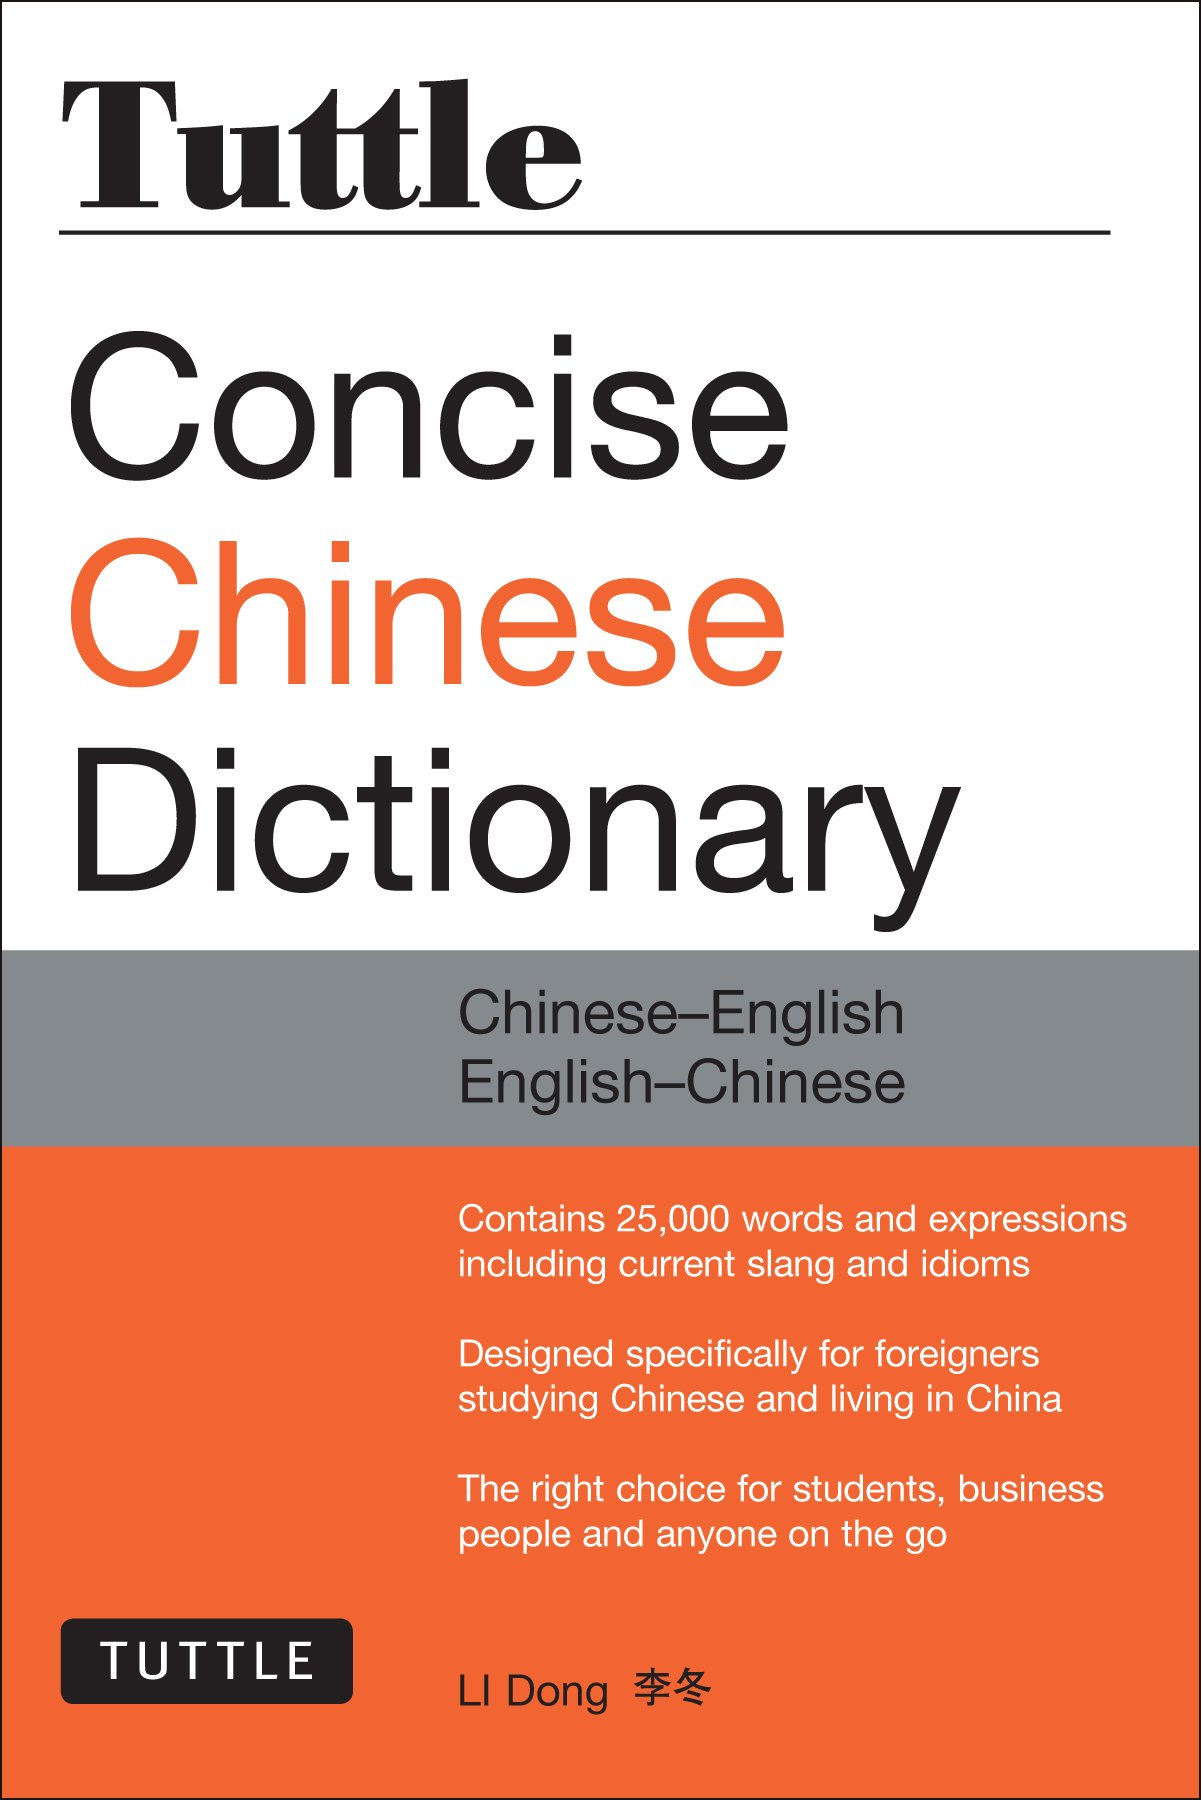 Read Online Tuttle Concise Chinese Dictionary: Chinese-English English-Chinese [Fully Romanized] Text fb2 ebook